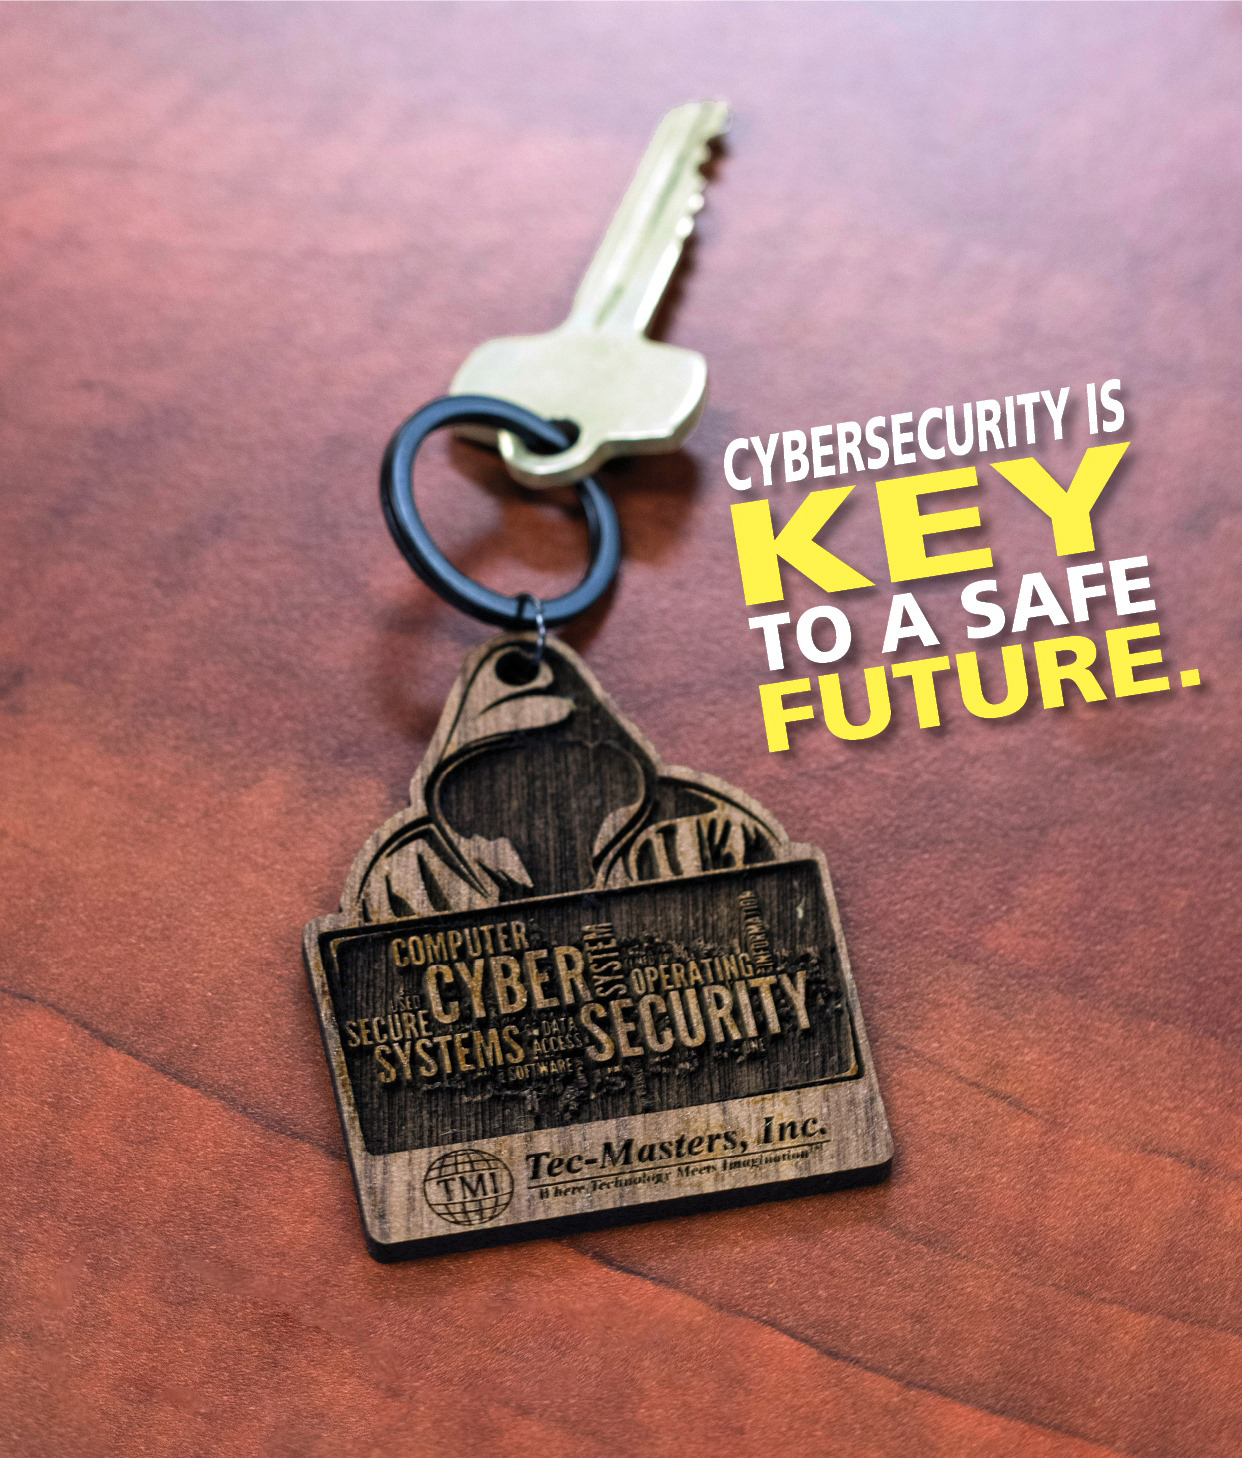 Tec-Masters, Inc. cbersecurity is key to a safe future keychain